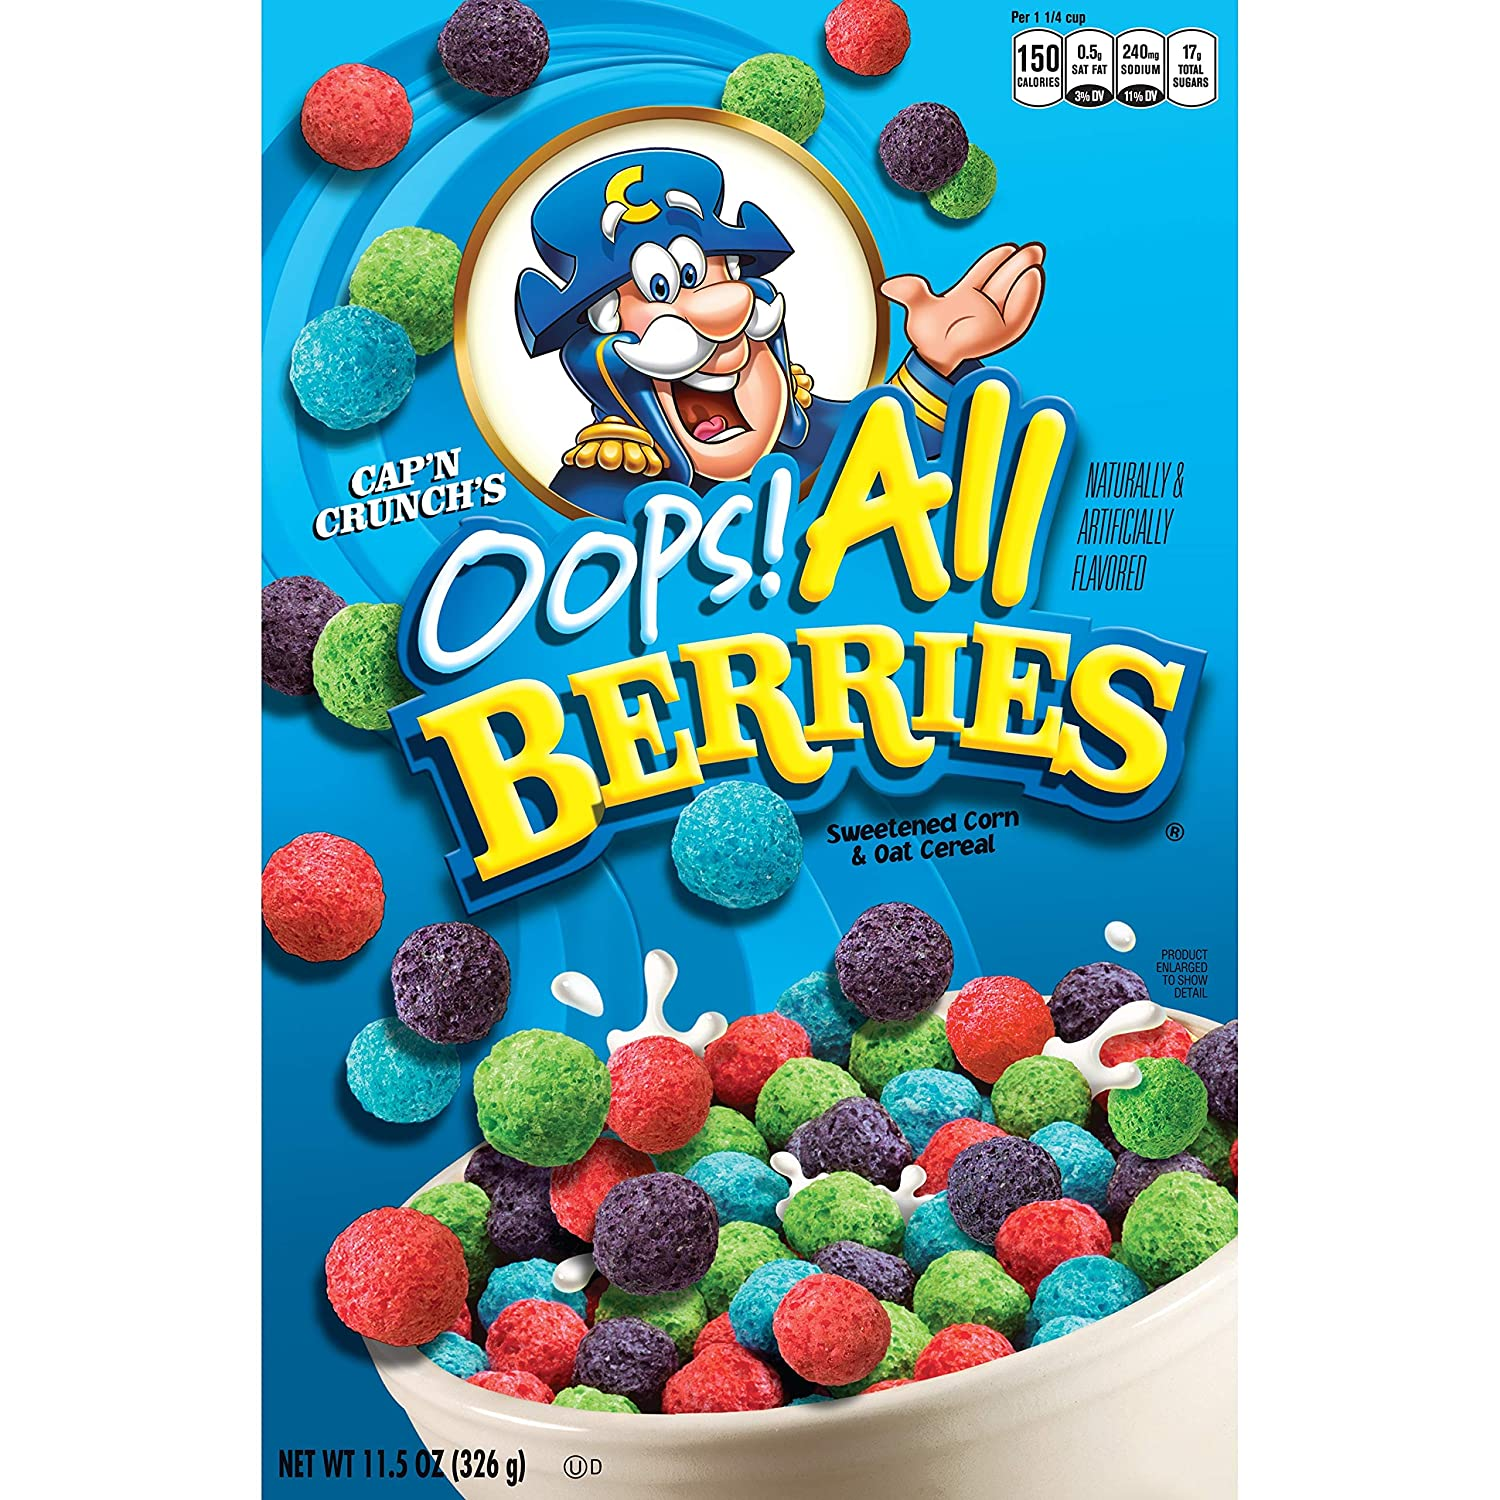 Amazon Com Cap N Crunch S Oops All Berries 11 5oz How long would it take to burn off 130 calories of cap'n crunch oops! cap n crunch s oops all berries 11 5oz